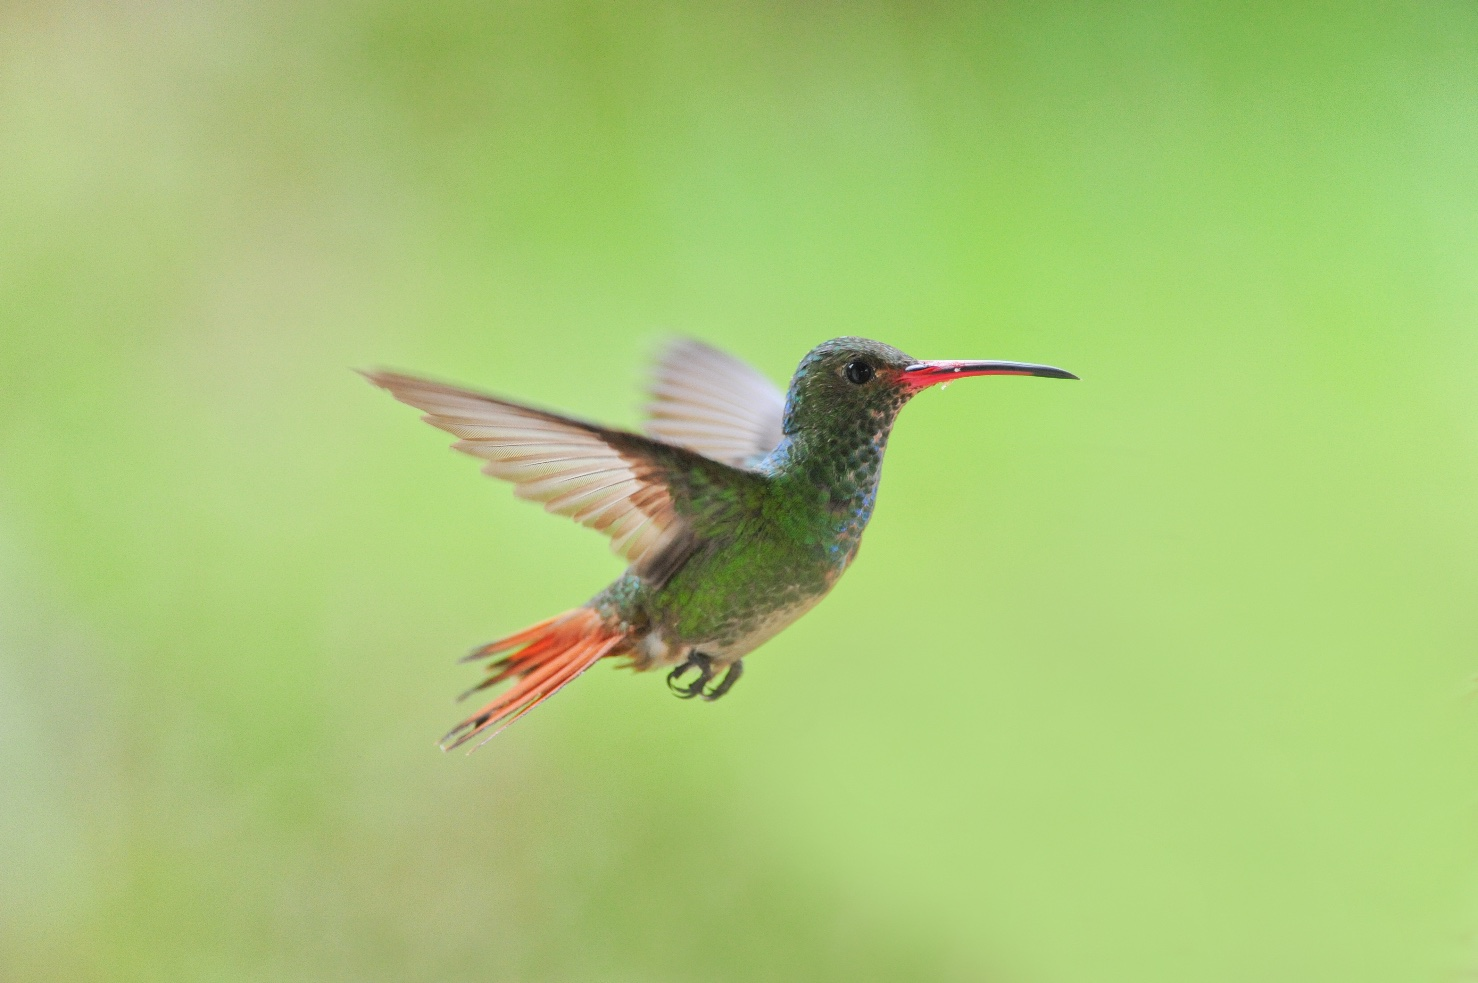 Rufous-tail male